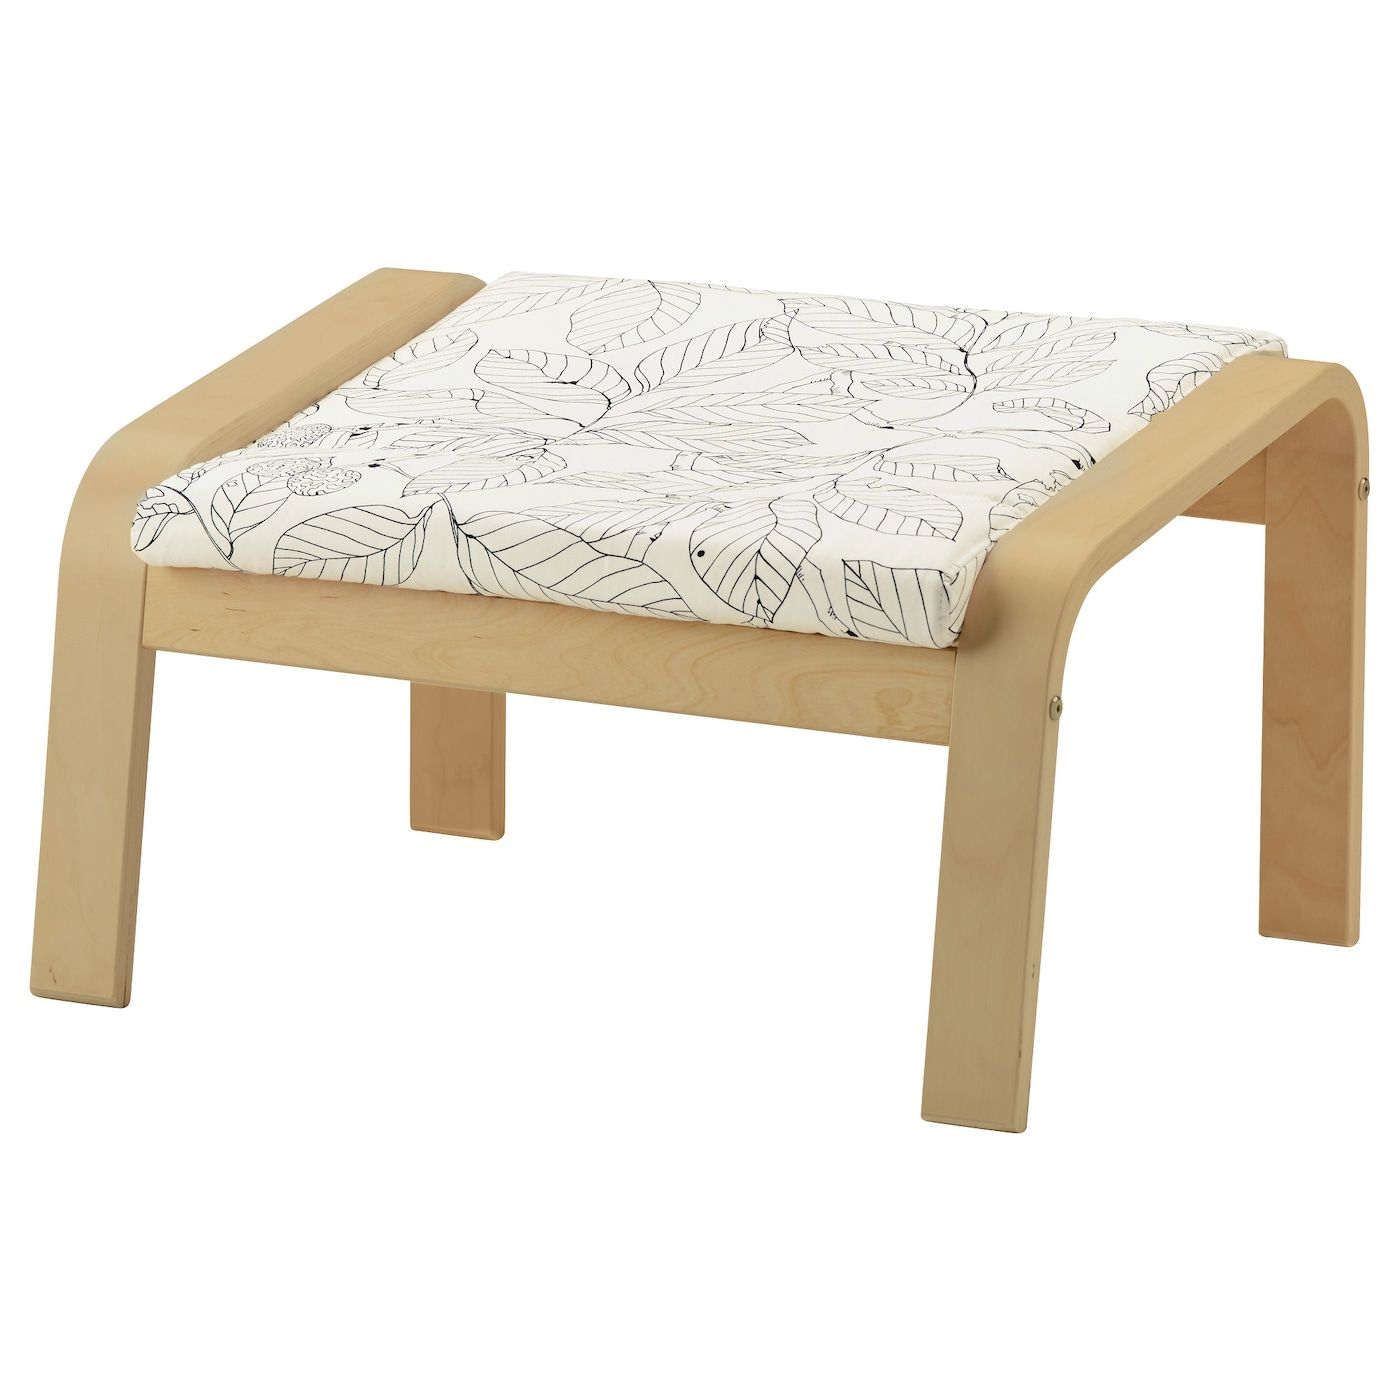 Ikea Poang Ottoman Birch Veneer Vislanda Black White The Cover Is Easy To Keep Clean As It Is Removable Layer Glued Ben Pouf En Tissu Ikea Stores Blancs